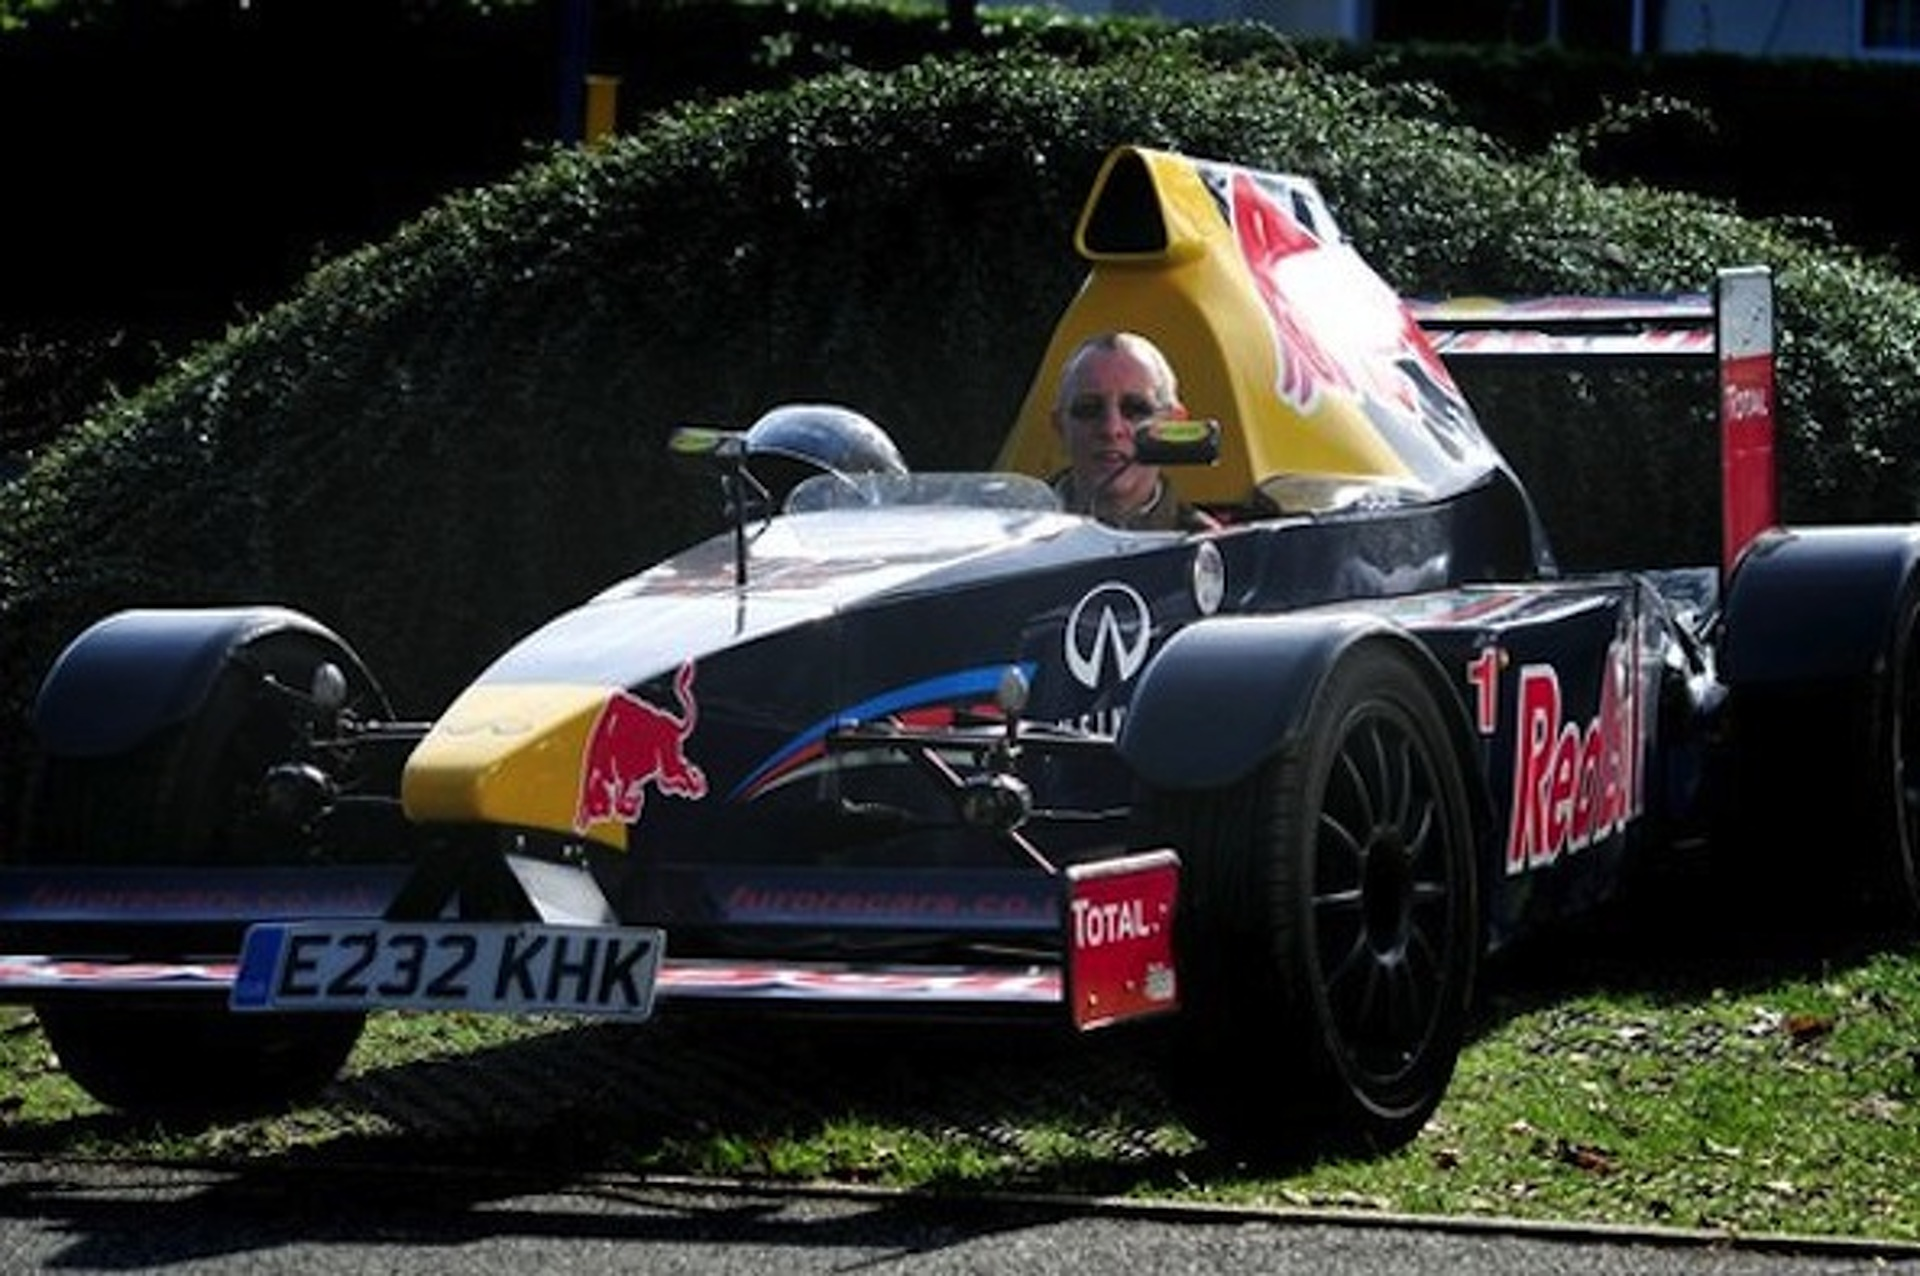 Uk Man Builds His Very Own Street Legal F1 Car